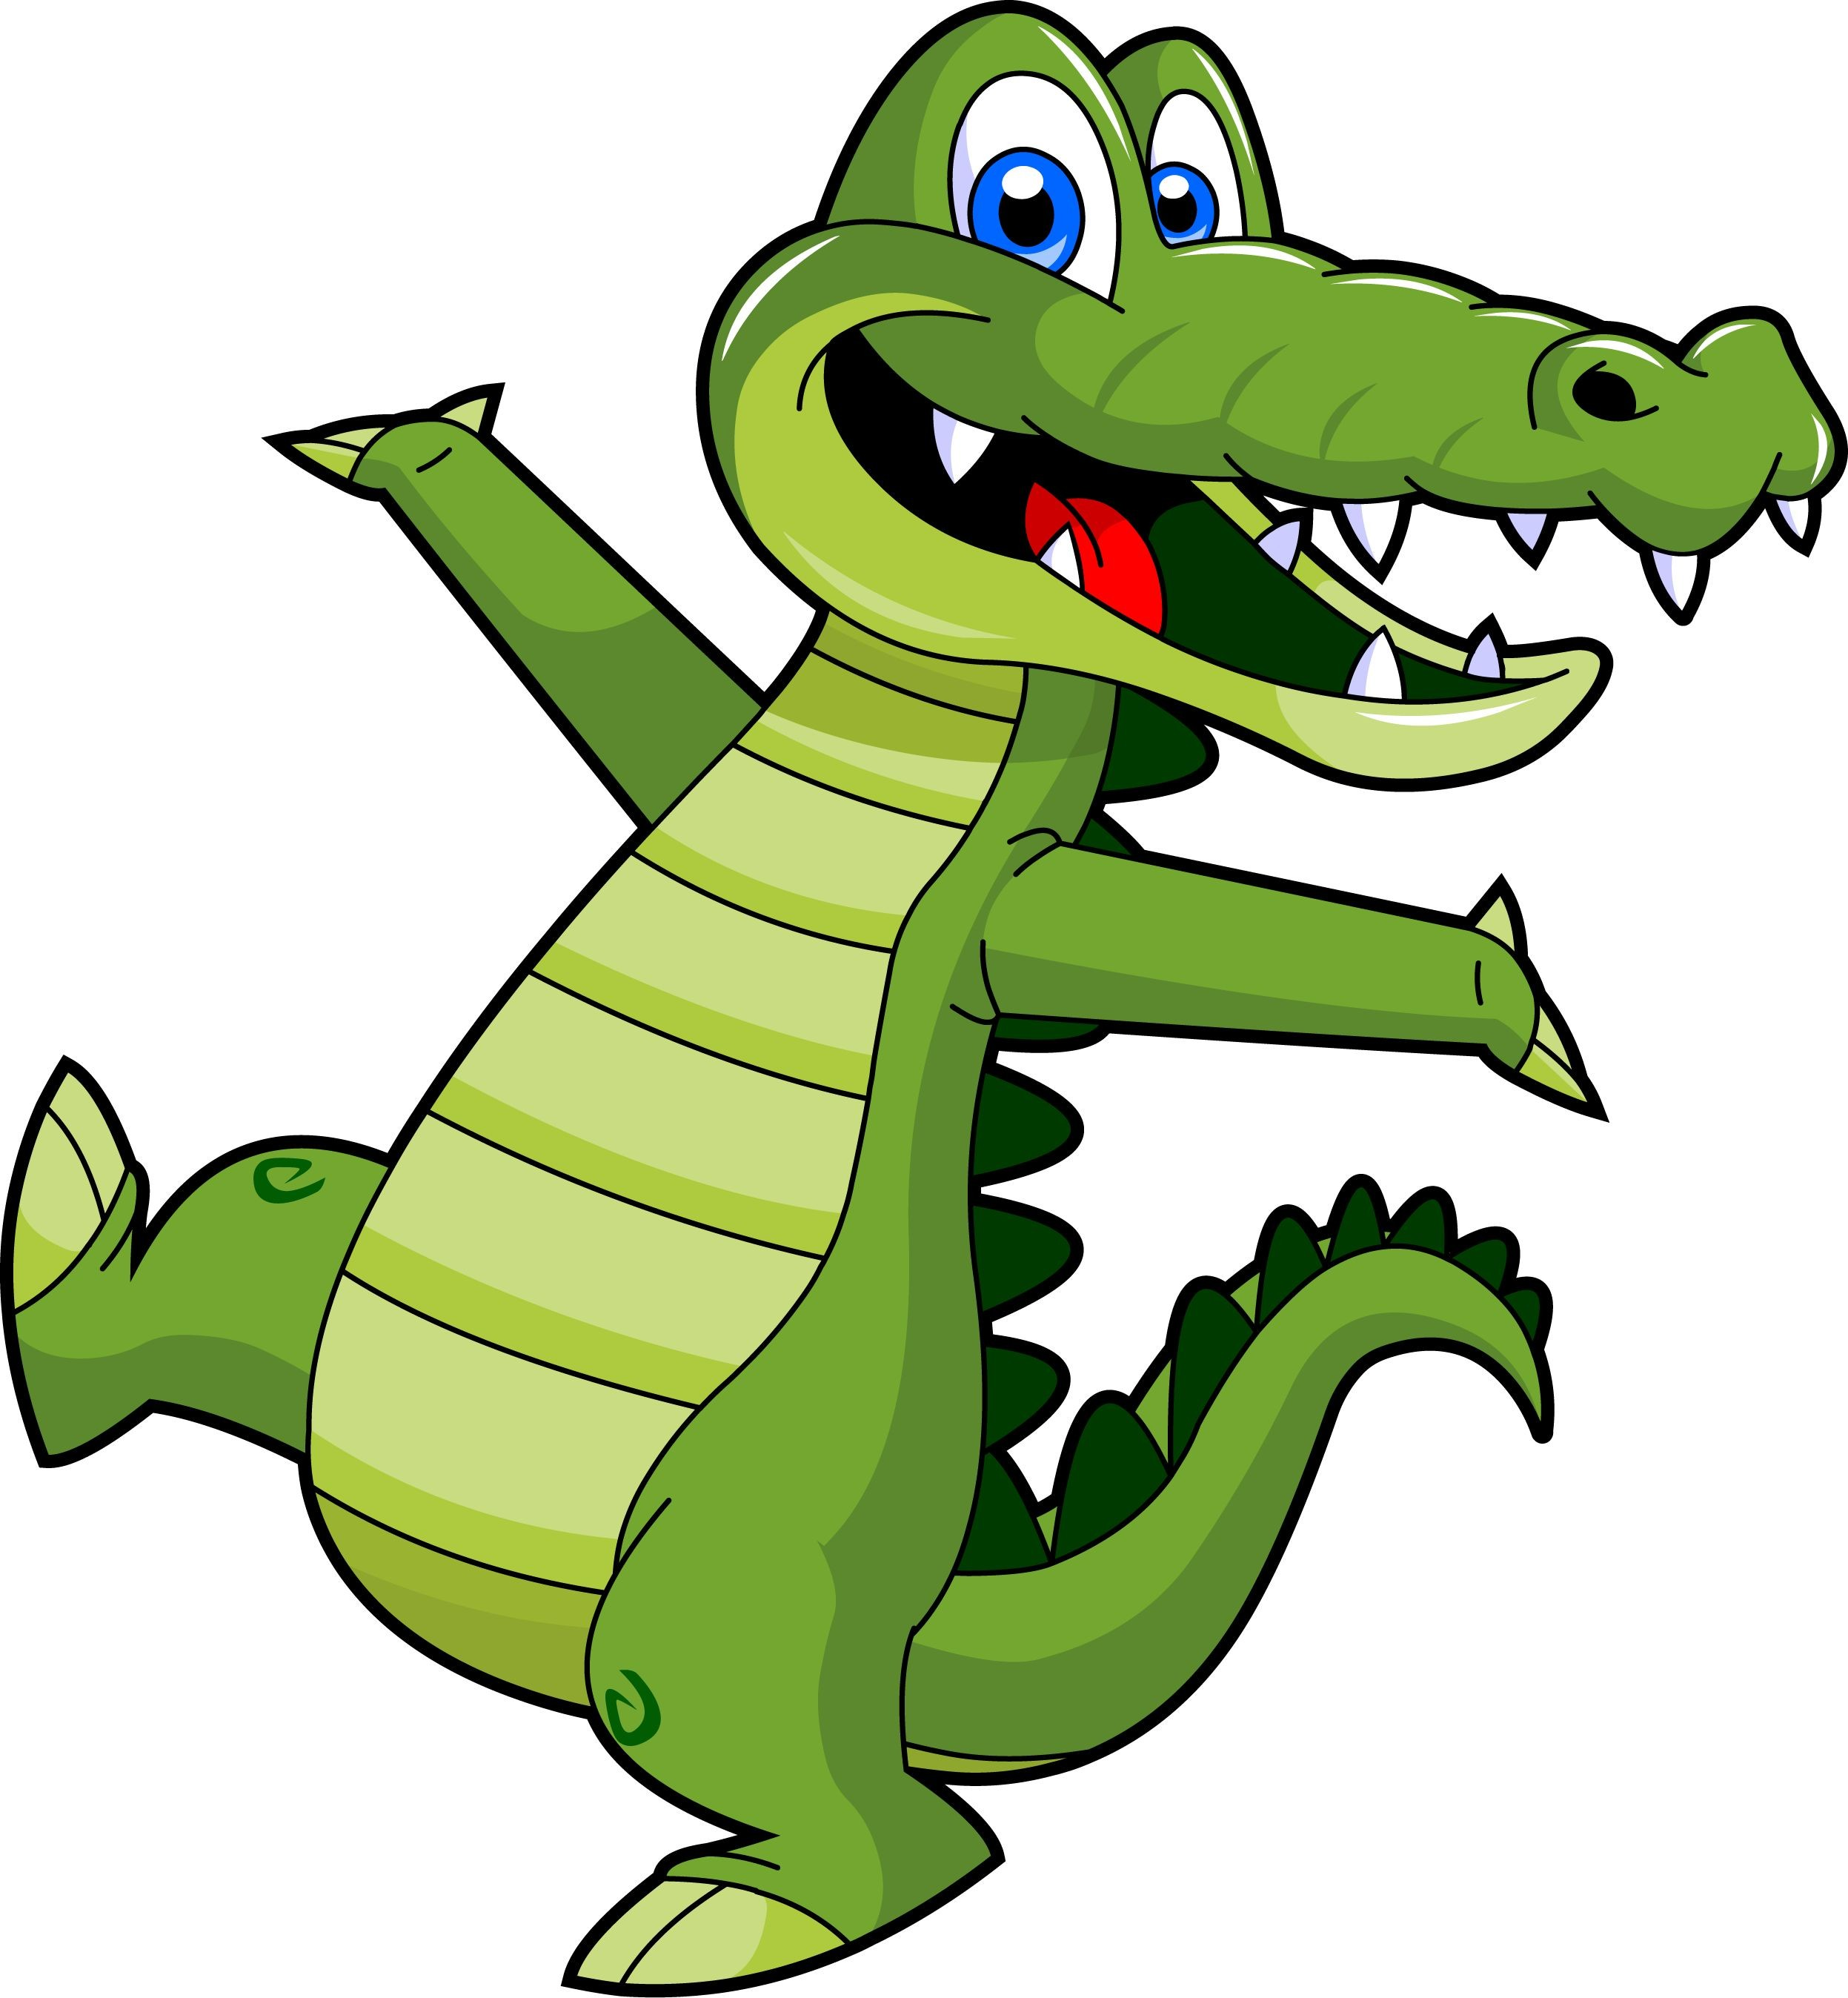 Cute Baby Alligator Clipart | Clipart Panda - Free Clipart ... - photo#11